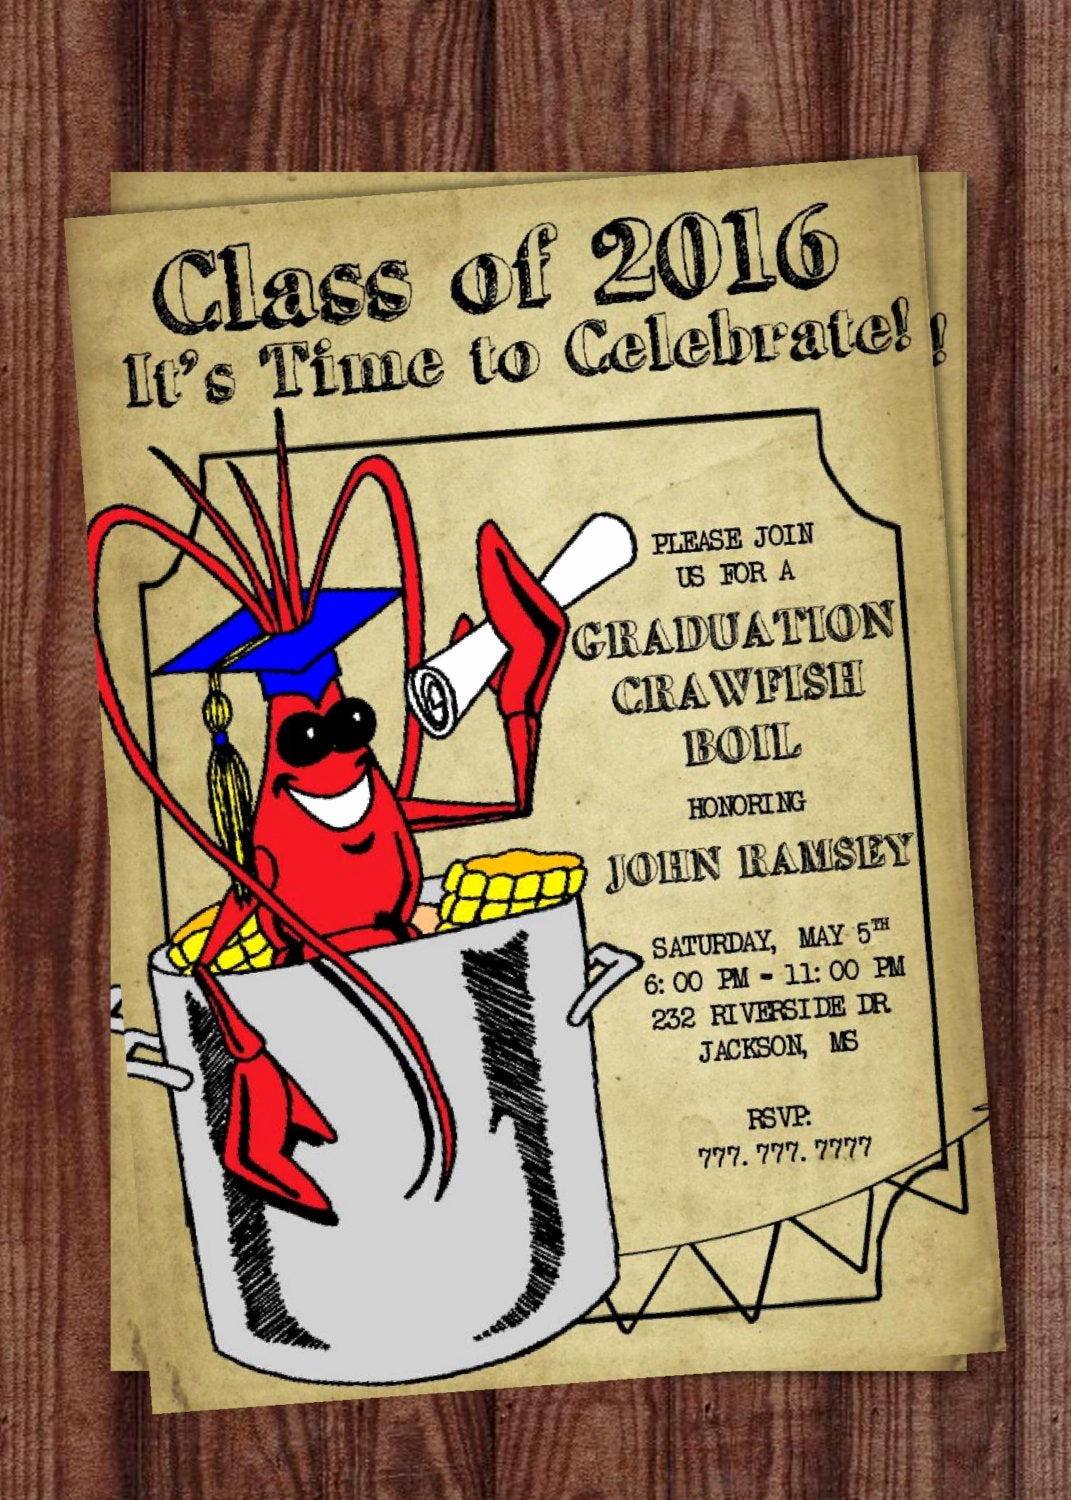 Crawfish Boil Invitation Wording Unique Crawfish Boil Invitation Graduation Party Generic Invitation